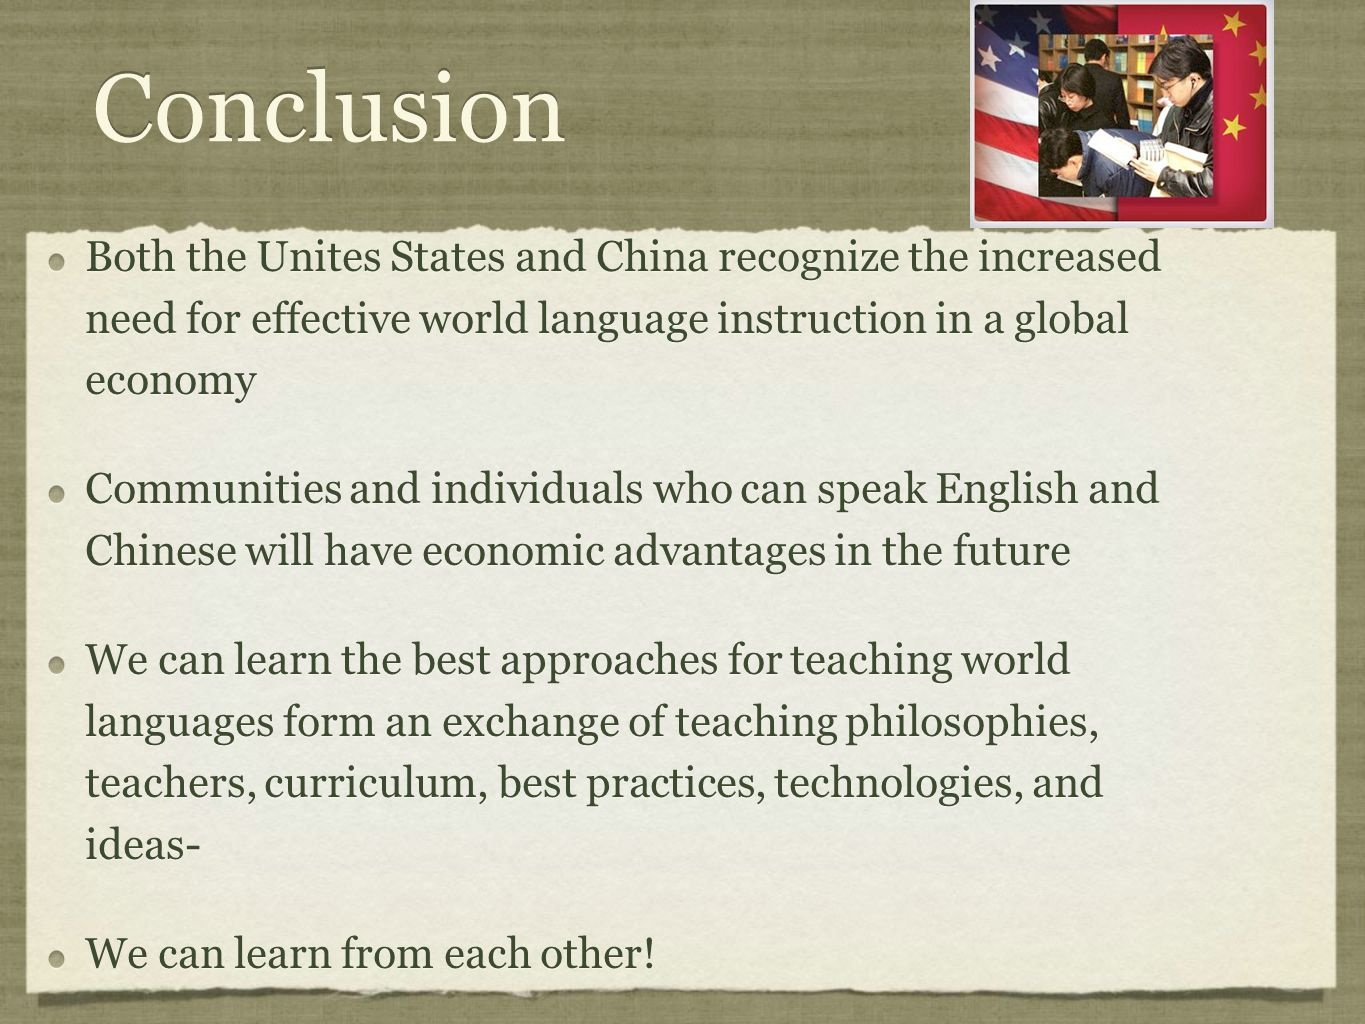 Conclusion Both the Unites States and China recognize the increased need for effective world language instruction in a global economy Communities and individuals who can speak English and Chinese will have economic advantages in the future We can learn the best approaches for teaching world languages form an exchange of teaching philosophies, teachers, curriculum, best practices, technologies, and ideas- We can learn from each other.